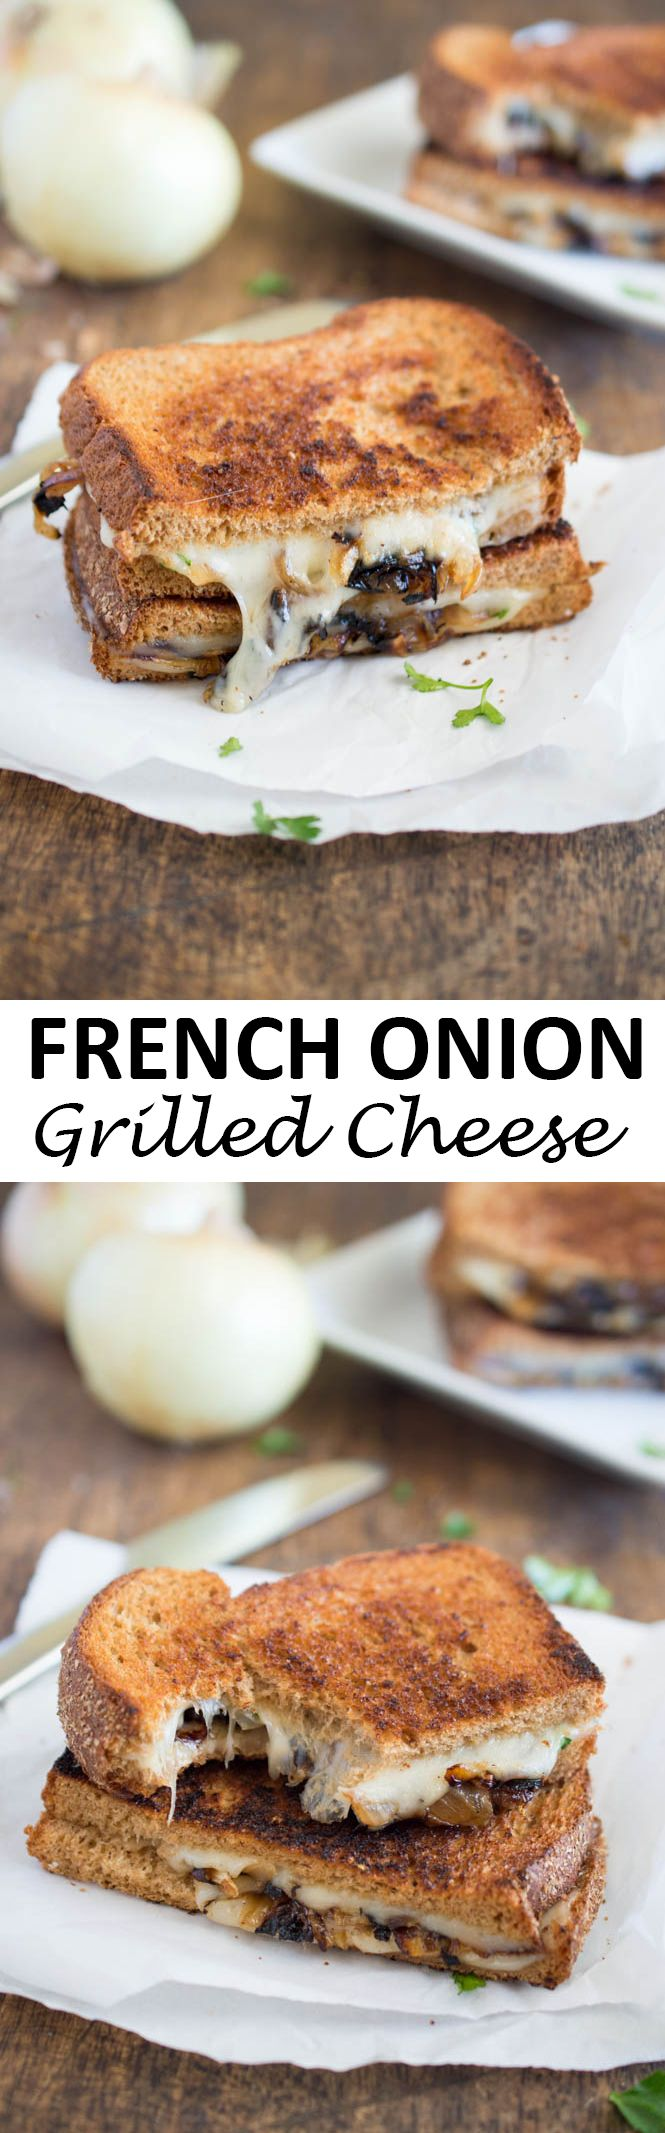 french onion soup sandwich french onion grilled cheese sandwich french ...